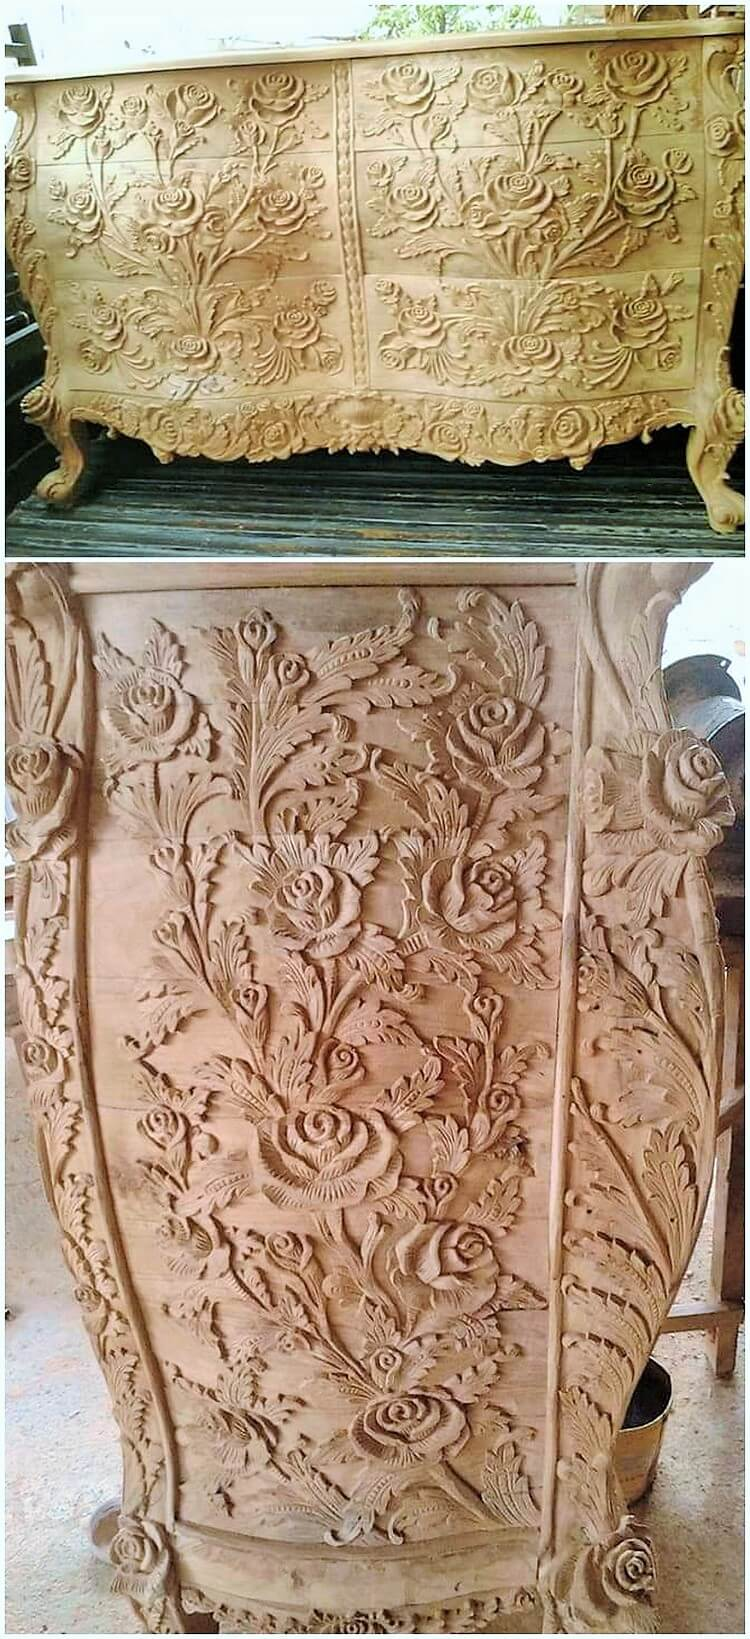 wooden decor item